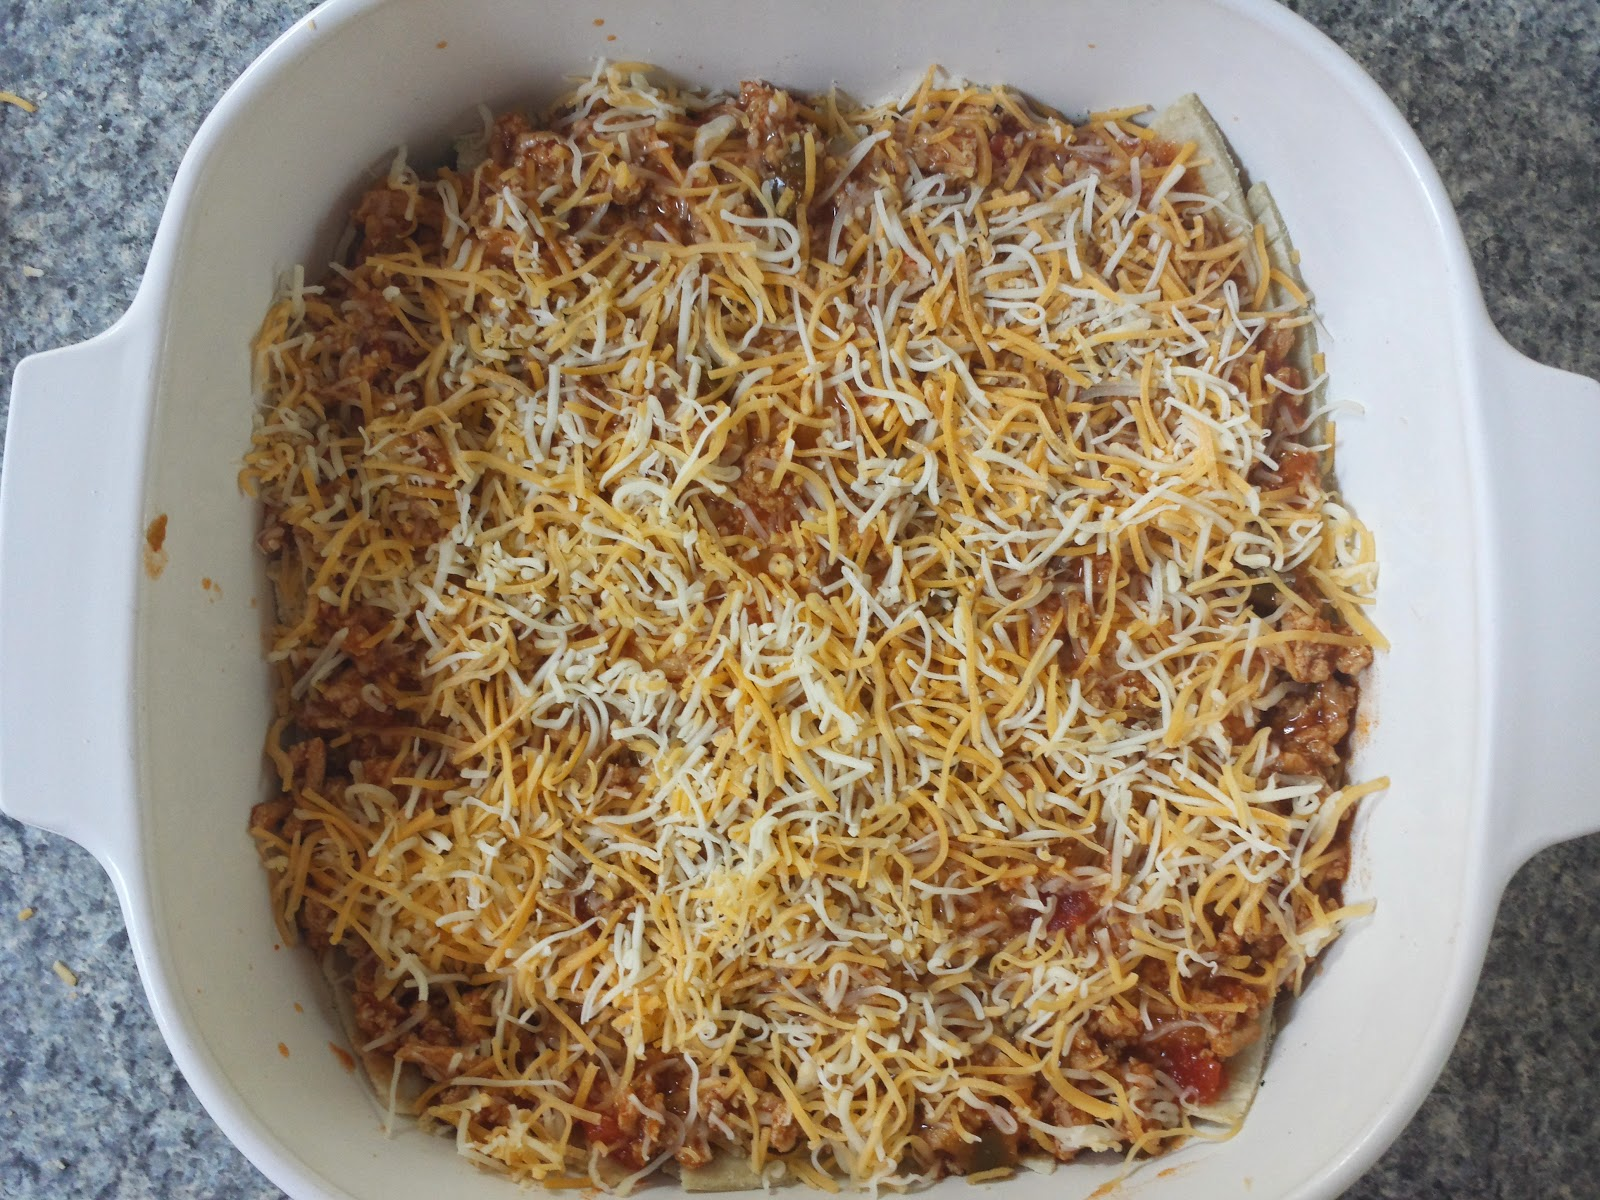 adding cheese to the enchilada bake